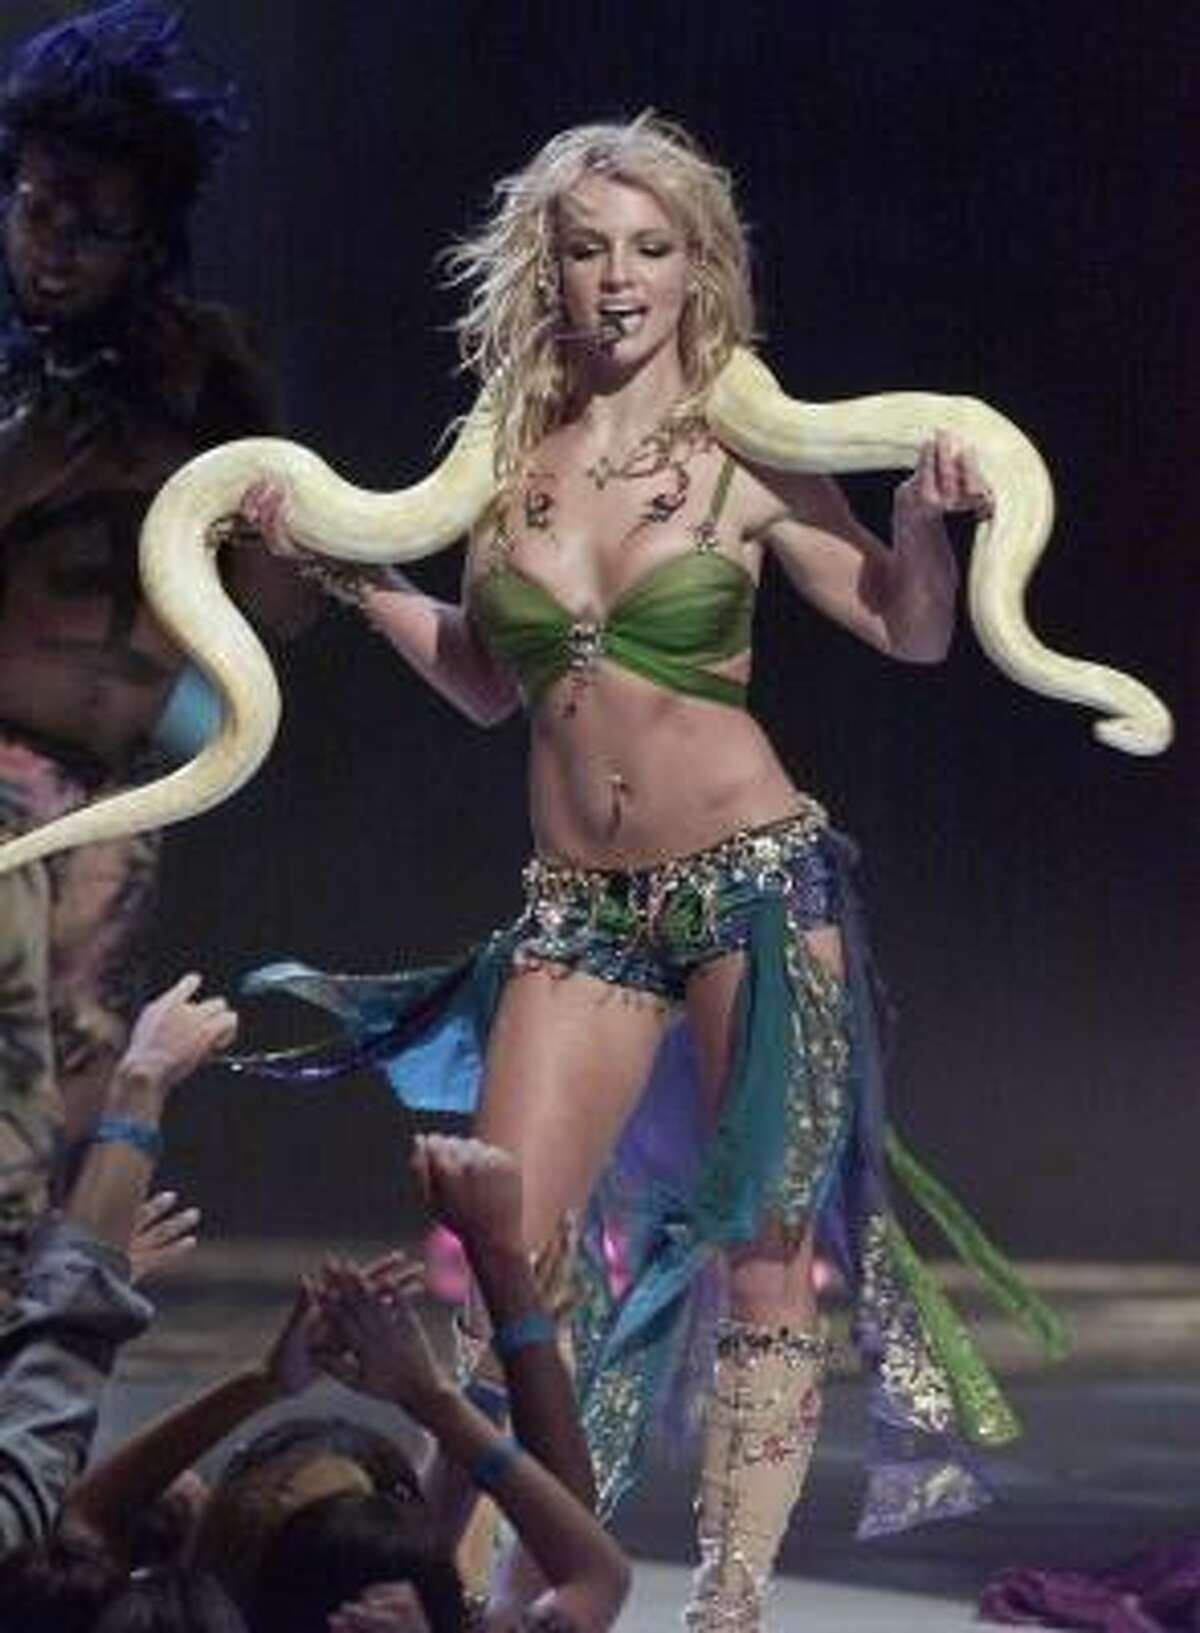 2001: Spears performed with a snake draped over her shoulders at the MTV Video Music Awards in New York City.